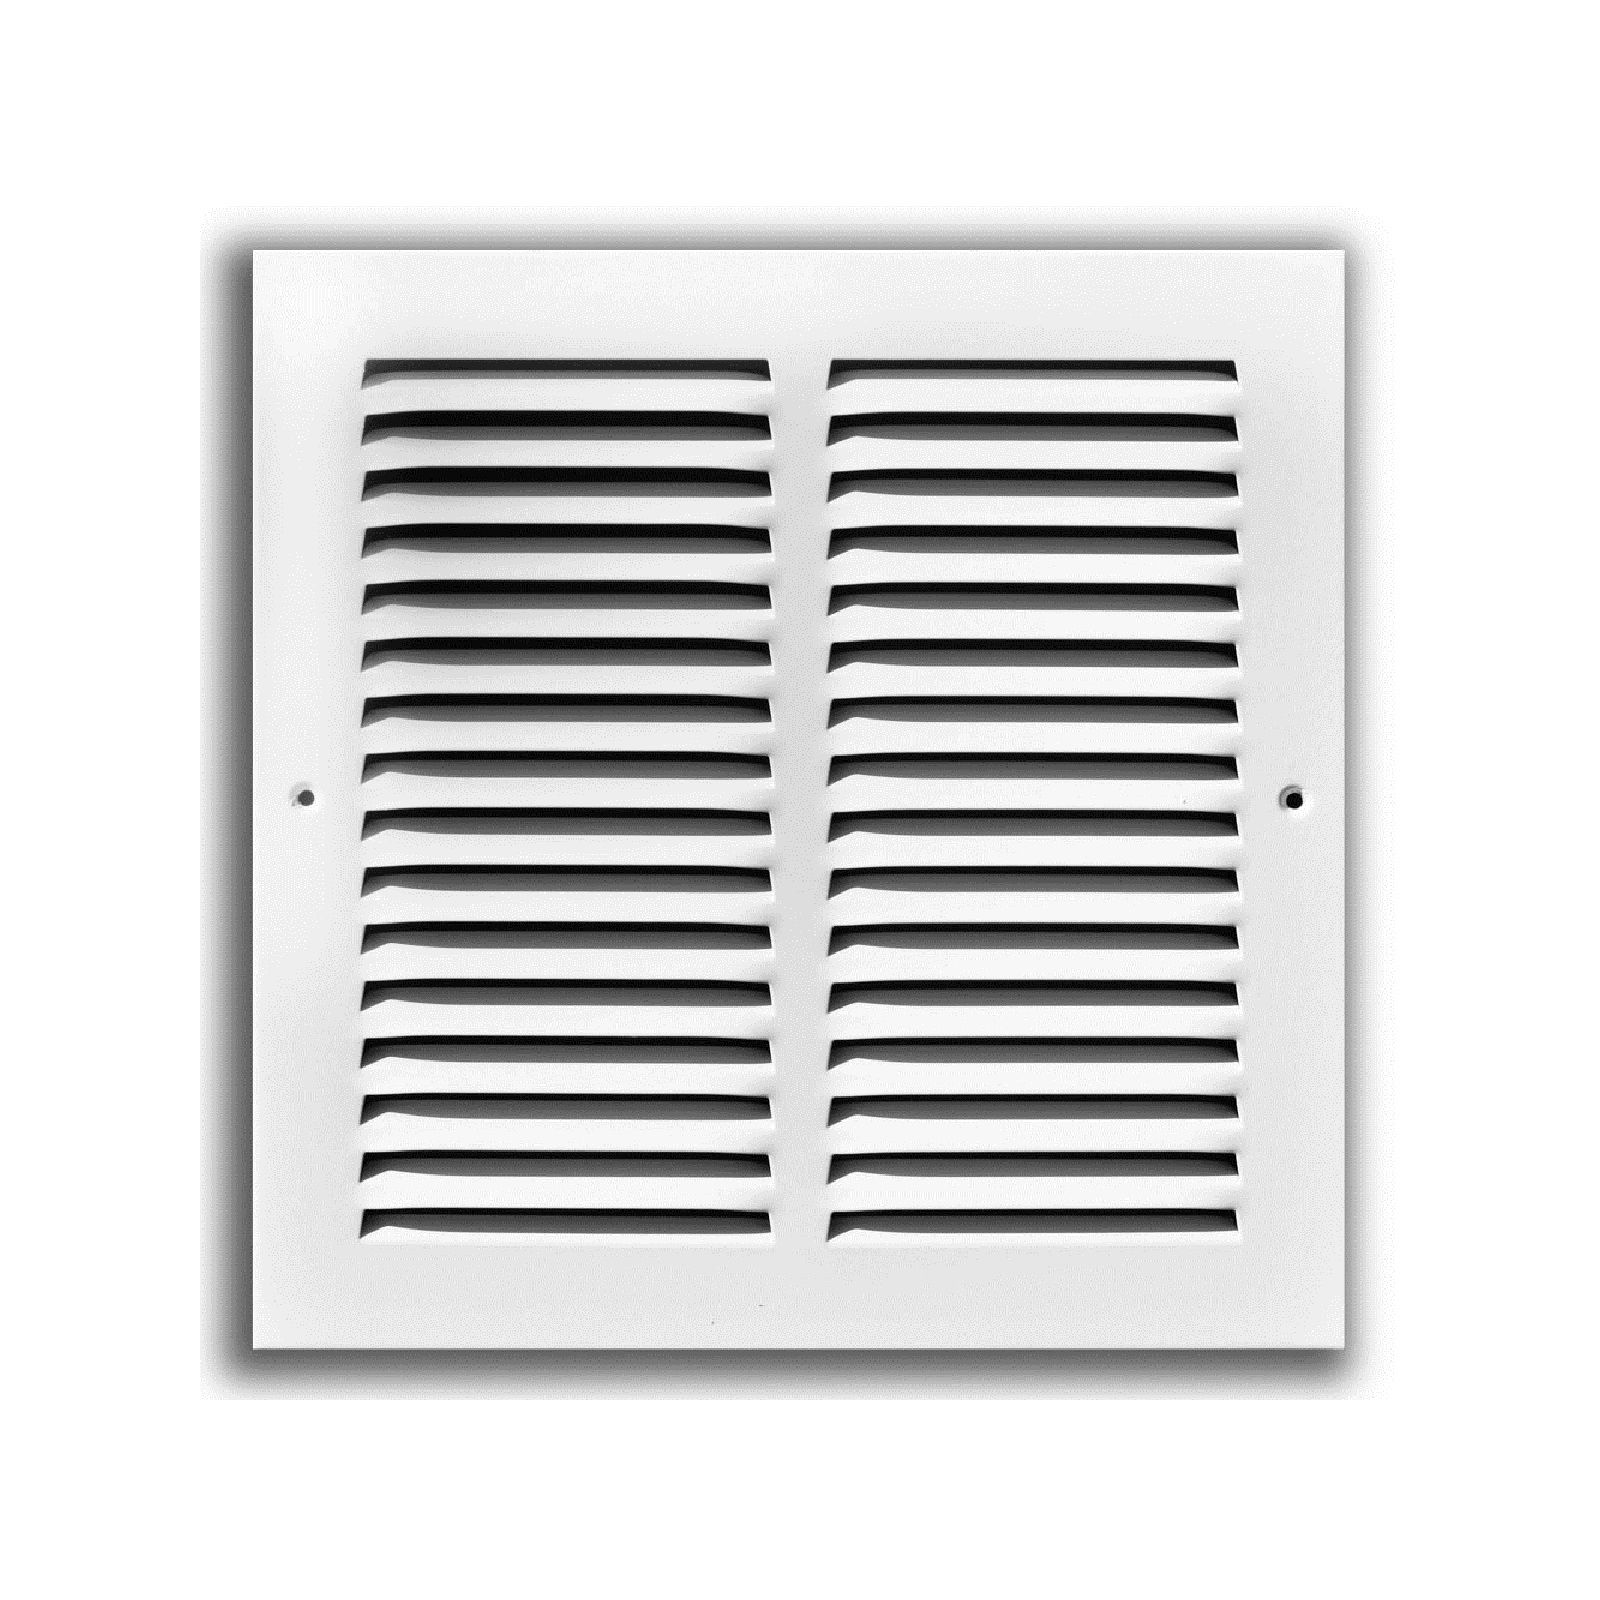 "TRUaire 170 18X18 - Steel Return Air Grille - 1/2"" Spaced Fin, White, 18"" X 18"""